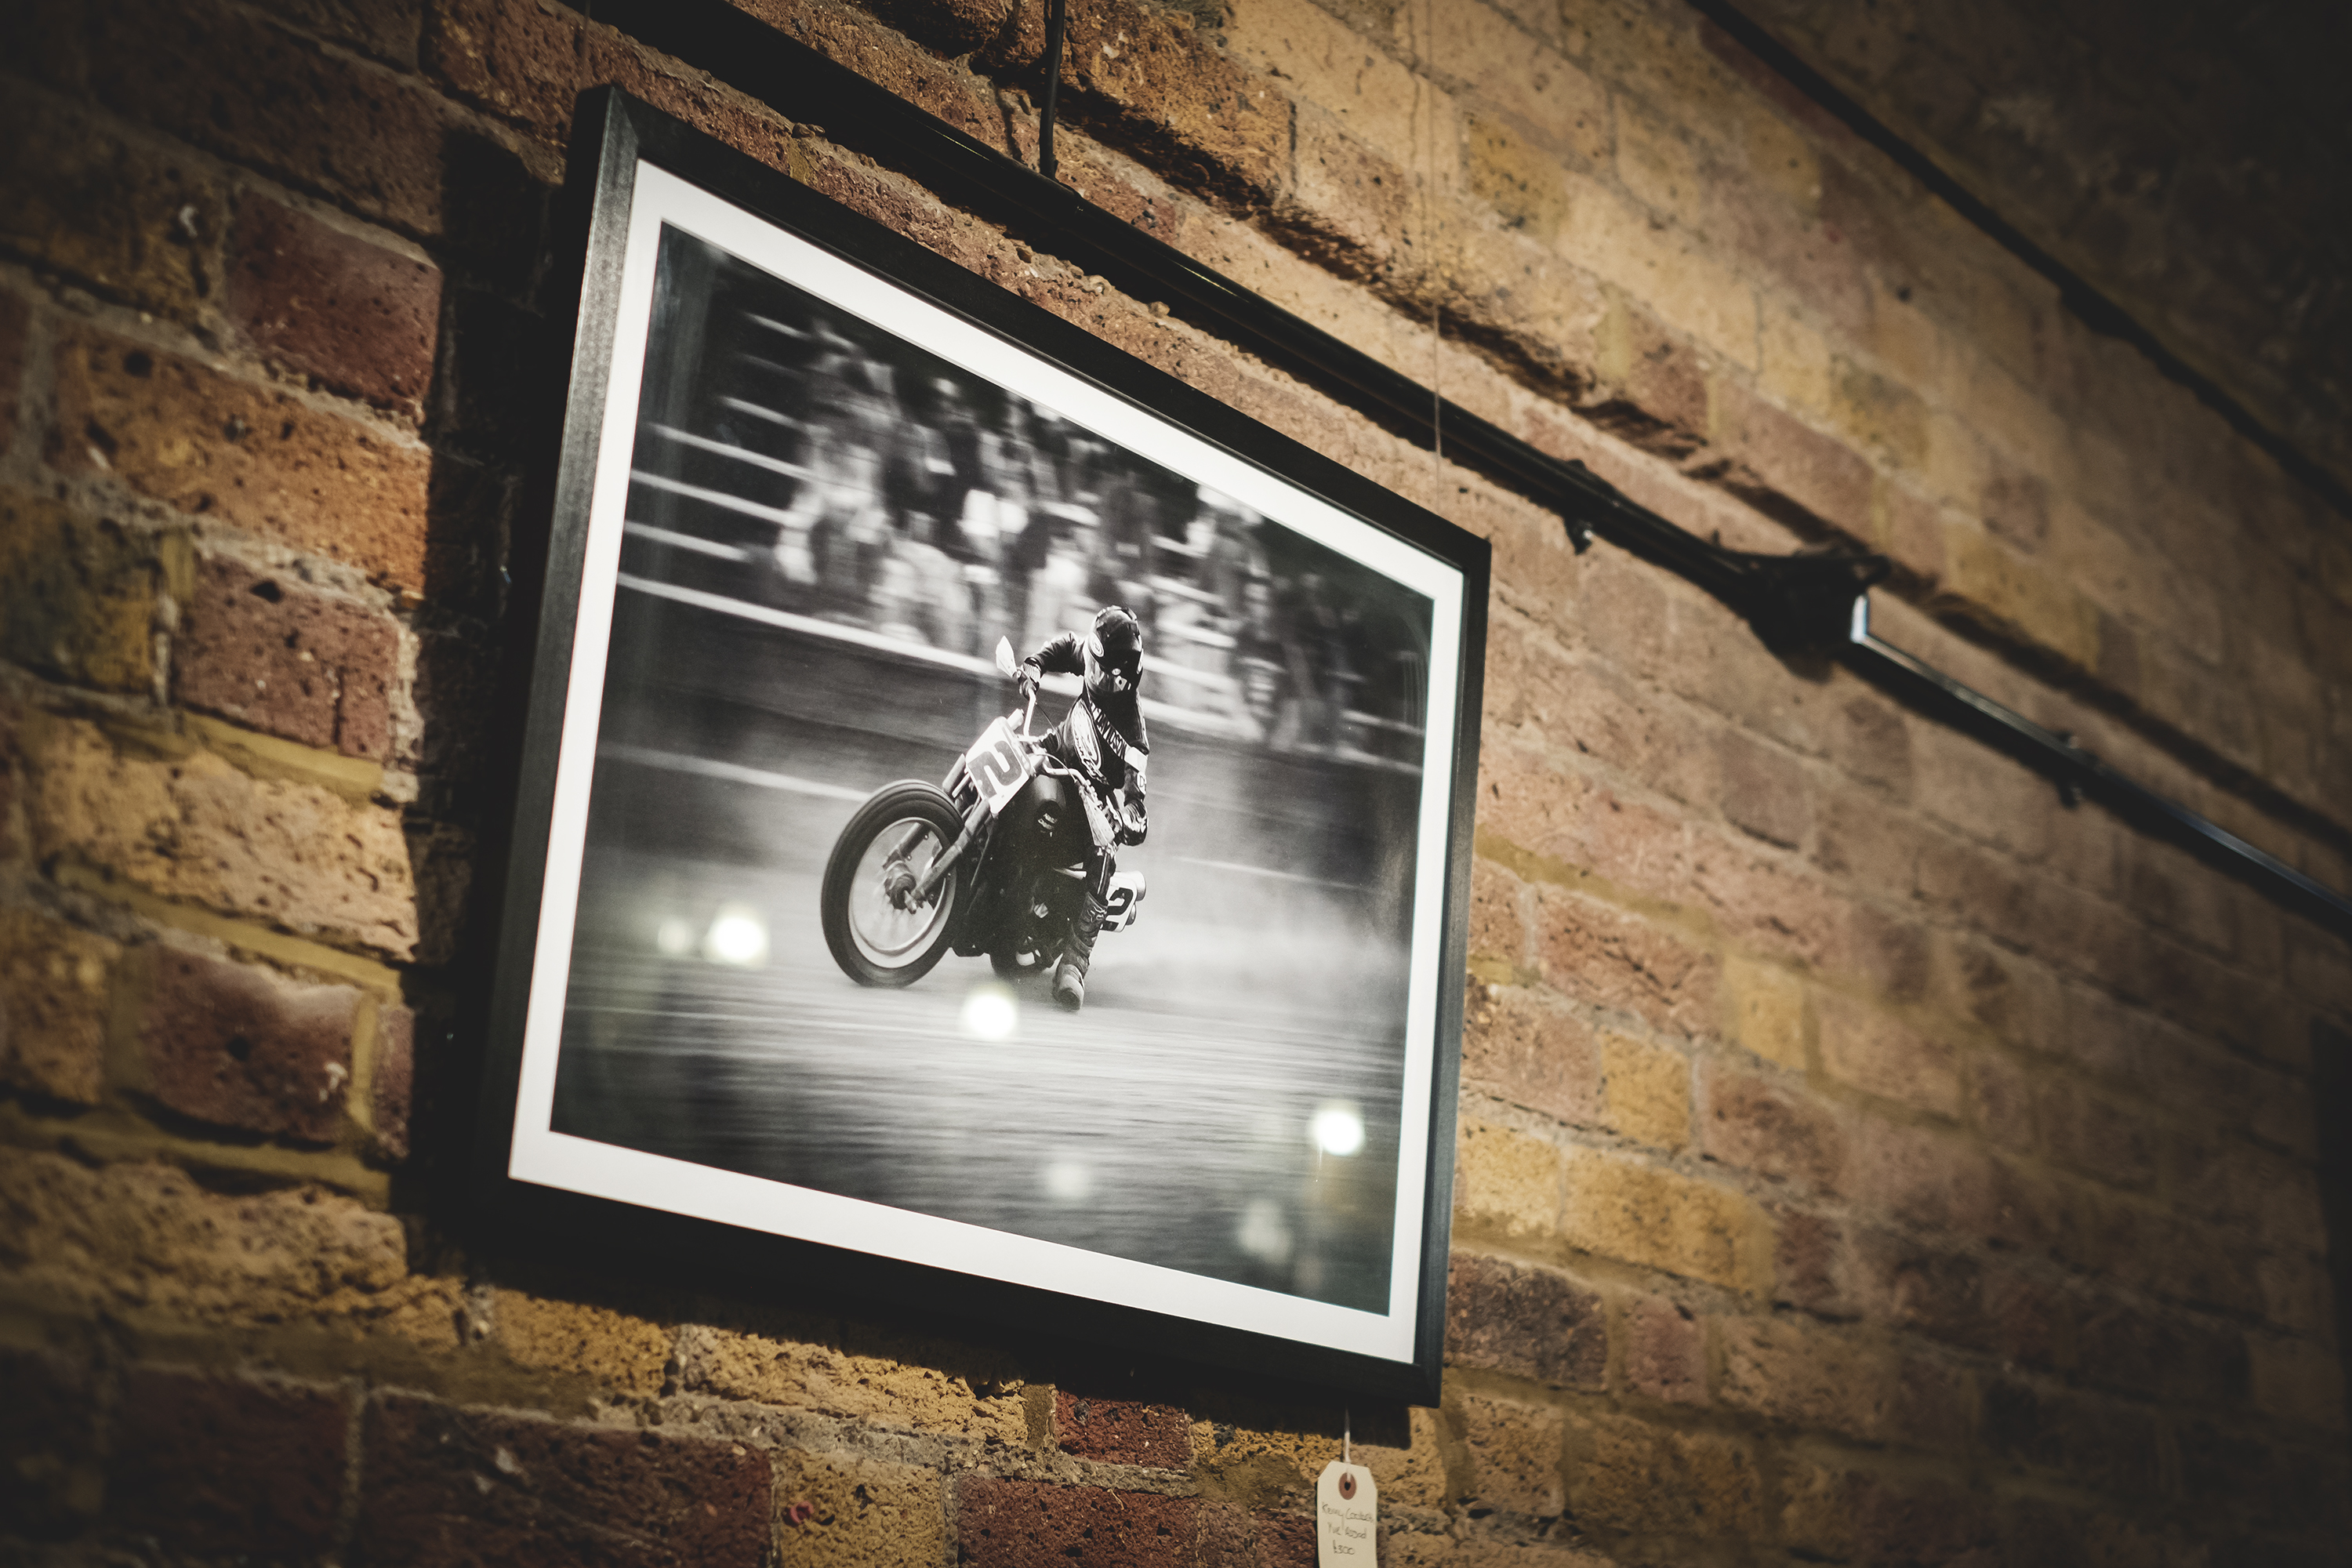 Photography and art at The Bike Shed